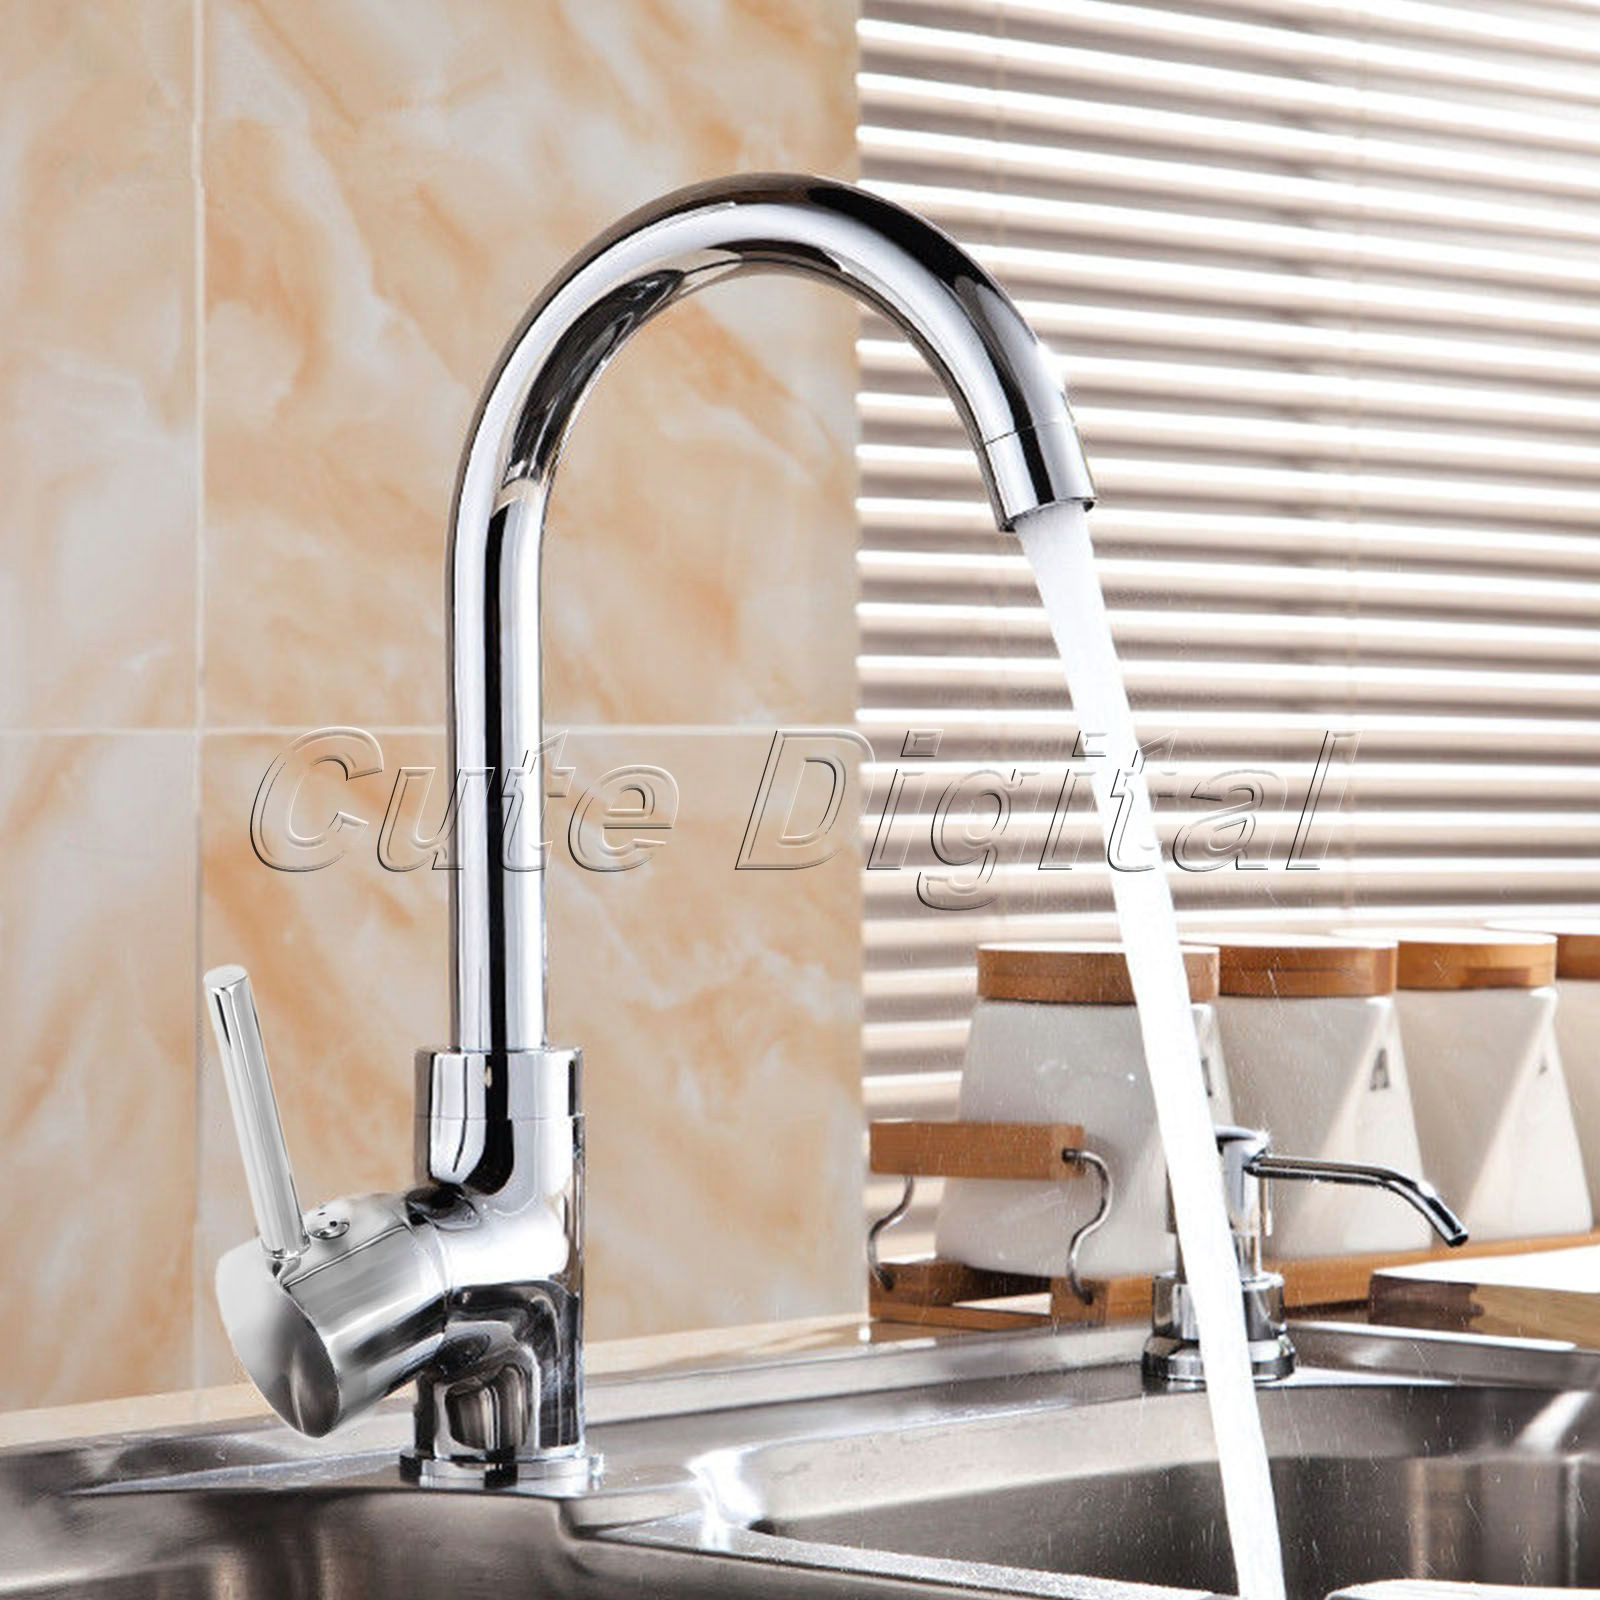 ФОТО Chrome Finish Bath Bathroom Faucet Single Handle Swivel Spout Cold and Hot Water Mixer Taps Rotatable Brass Kitchen Sink Faucet